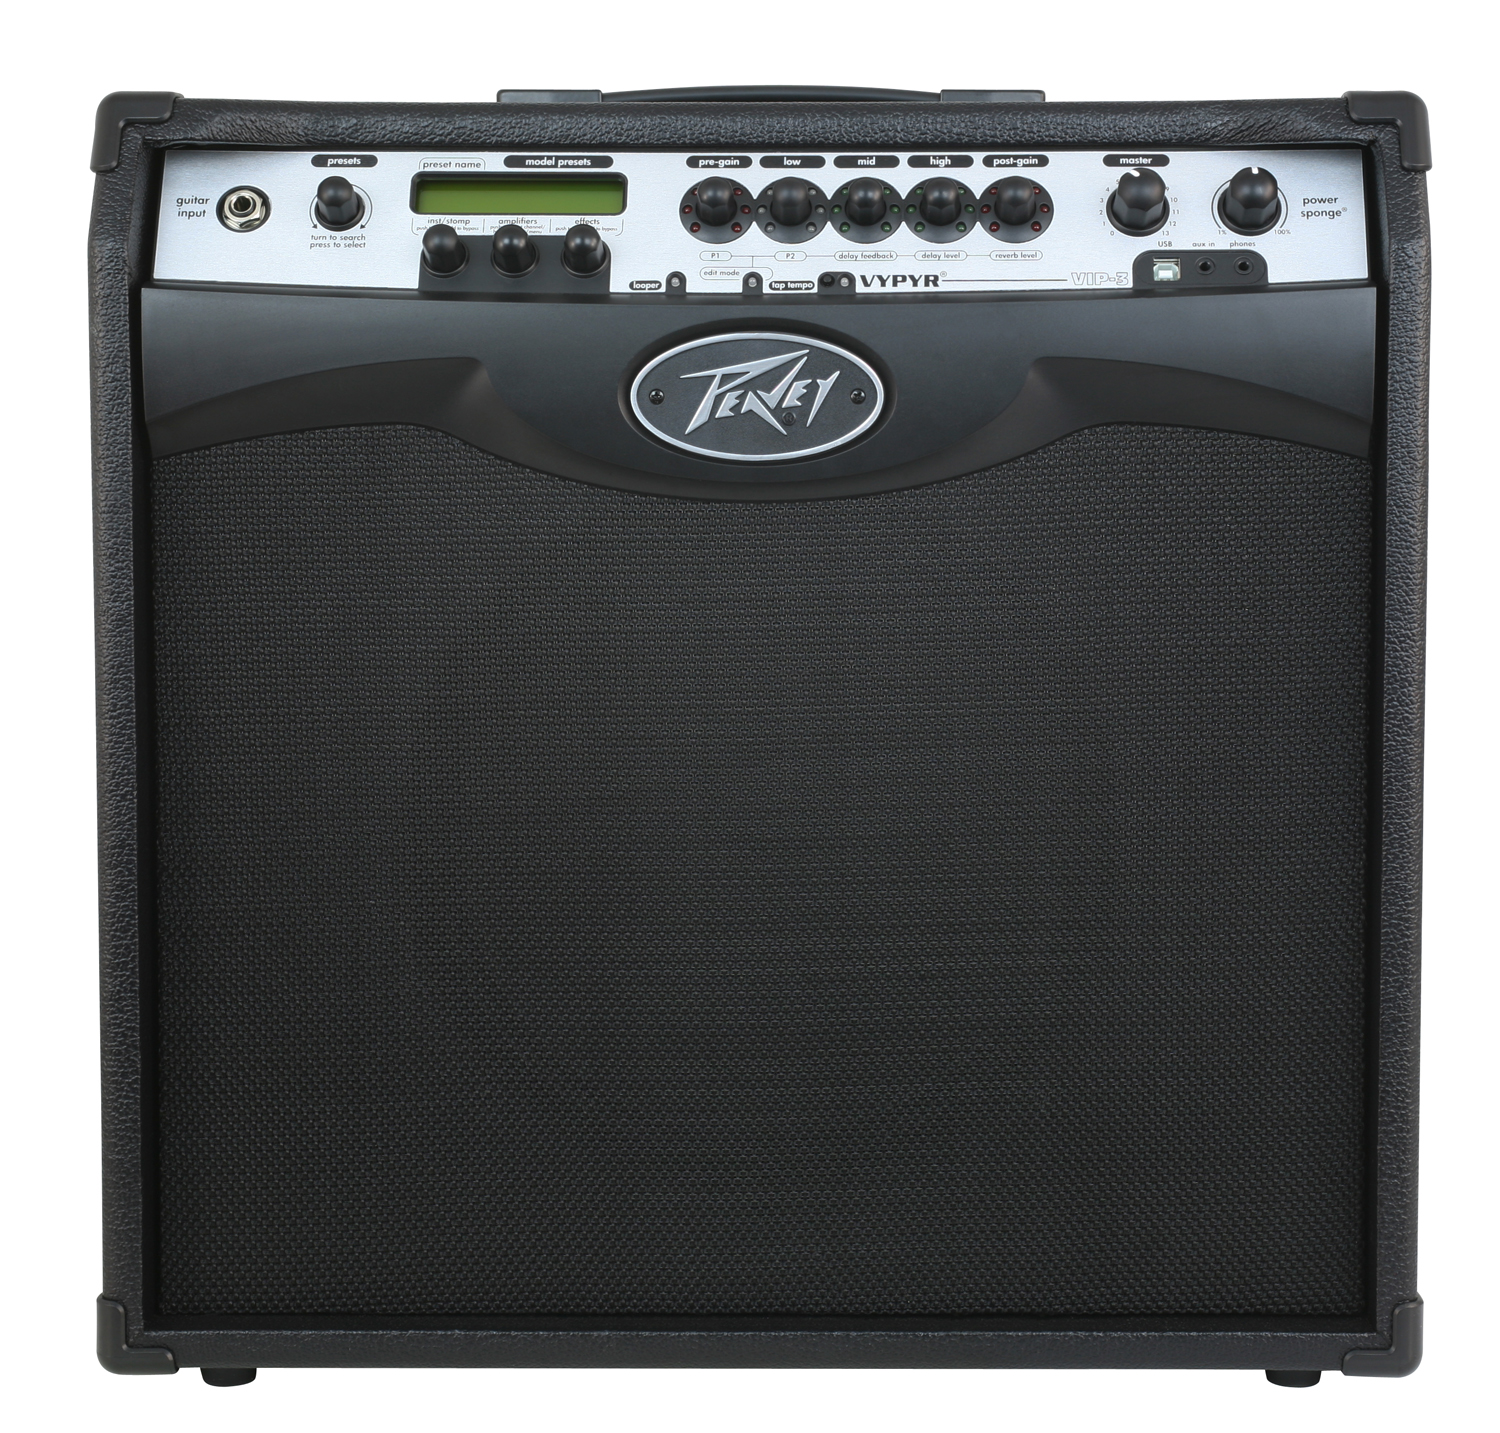 peavey vypyr vip 3 electric guitar combo 100w amp 12 speaker modeling amplifier pev13 3608160 rs. Black Bedroom Furniture Sets. Home Design Ideas